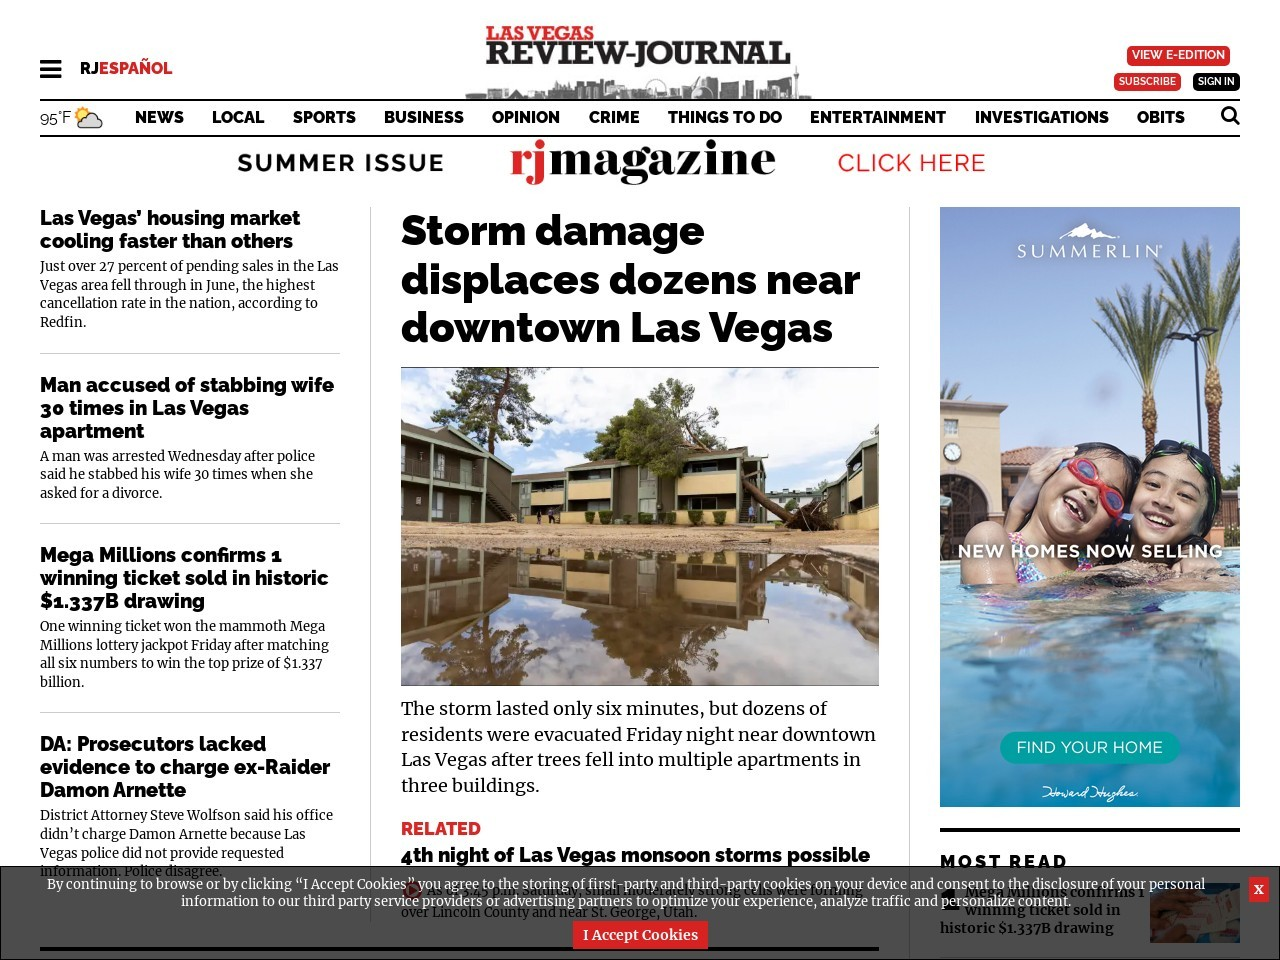 6 reasons Las Vegas sports fans need a digital subscription to reviewjournal.com